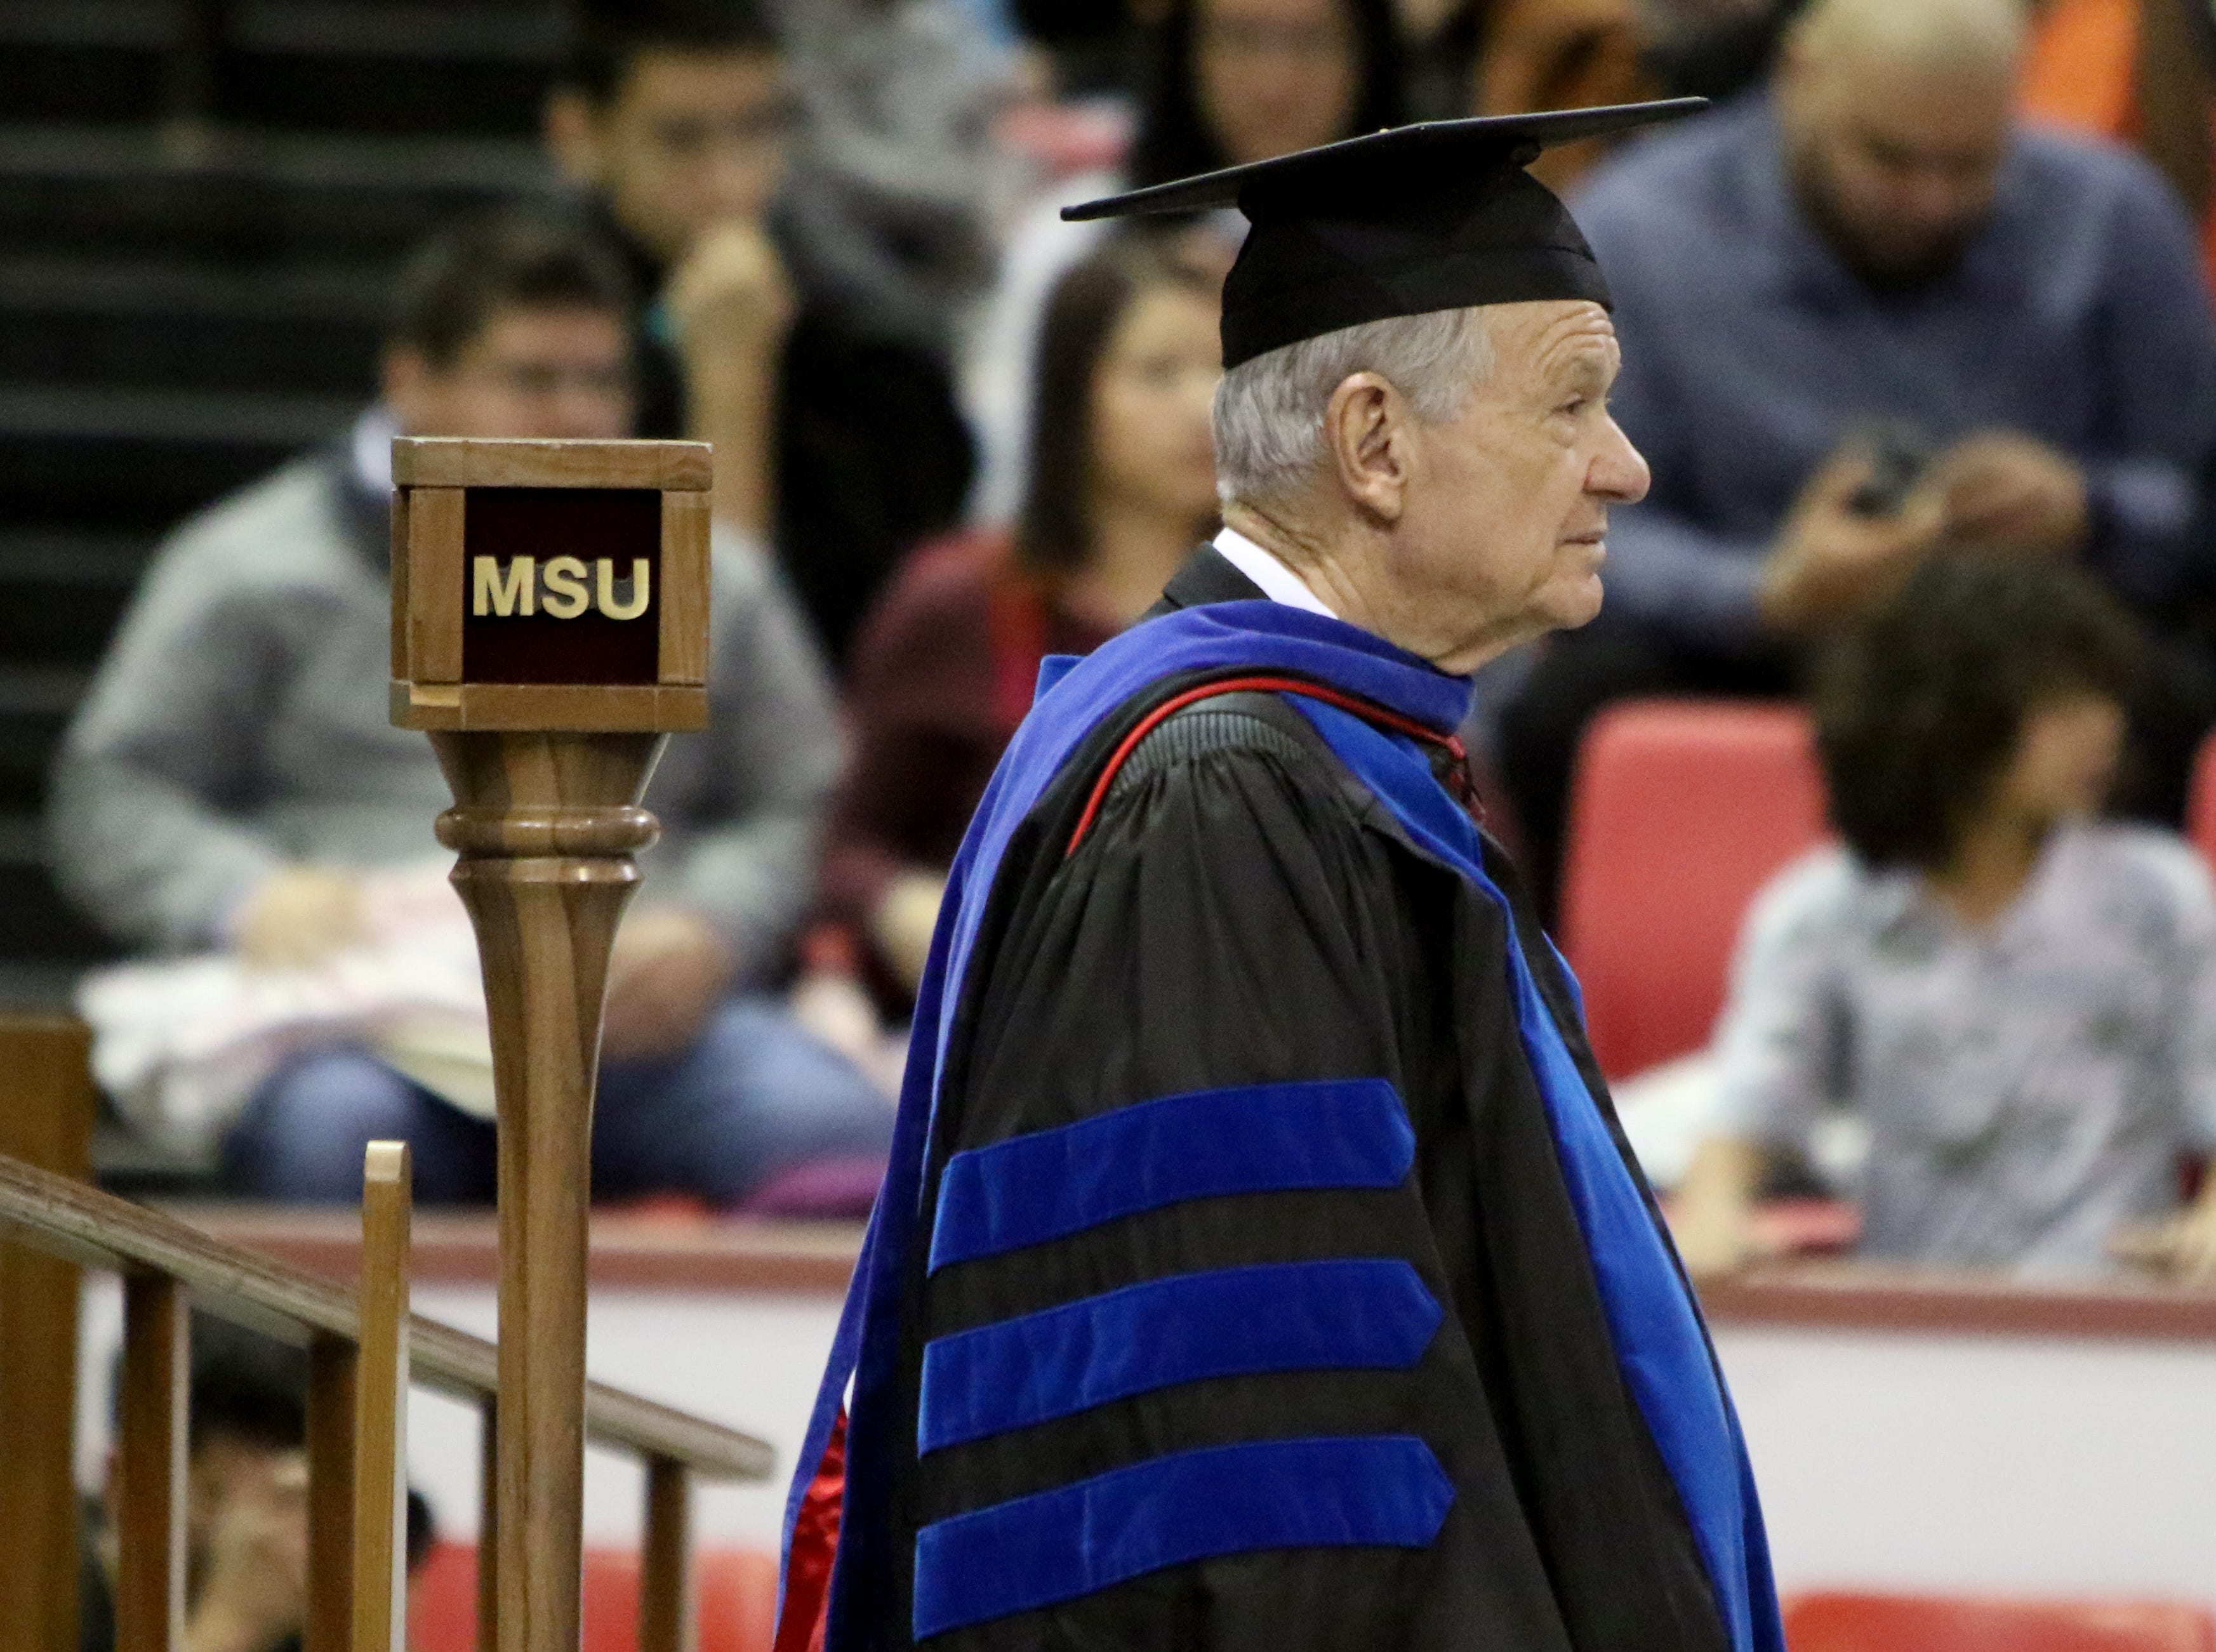 Midwestern State University history professor Harry Hewitt takes part in his final fall commencement ceremony Saturday, Dec. 15, 2018, in Kay Yeager Coliseum at the MPEC. Hewitt is MSU's longest serving professor at 51 years and is retiring.